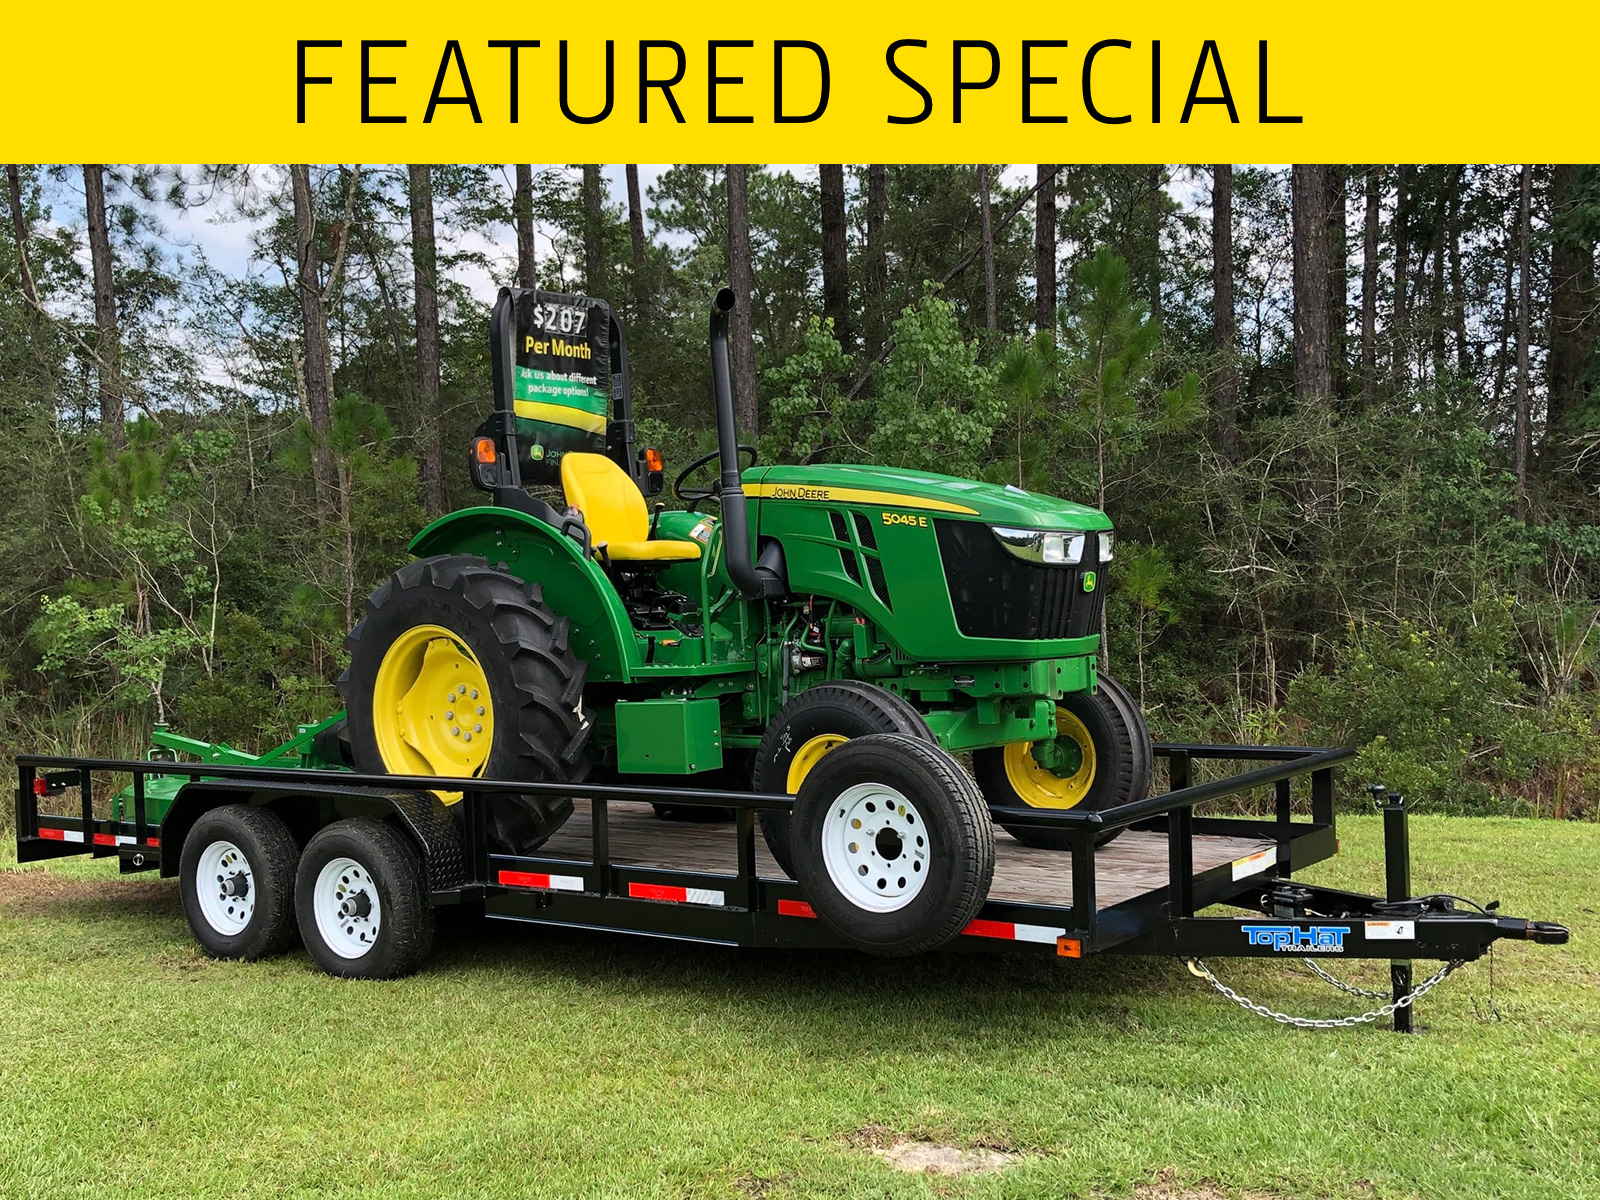 5045E 2WD Tractor Package